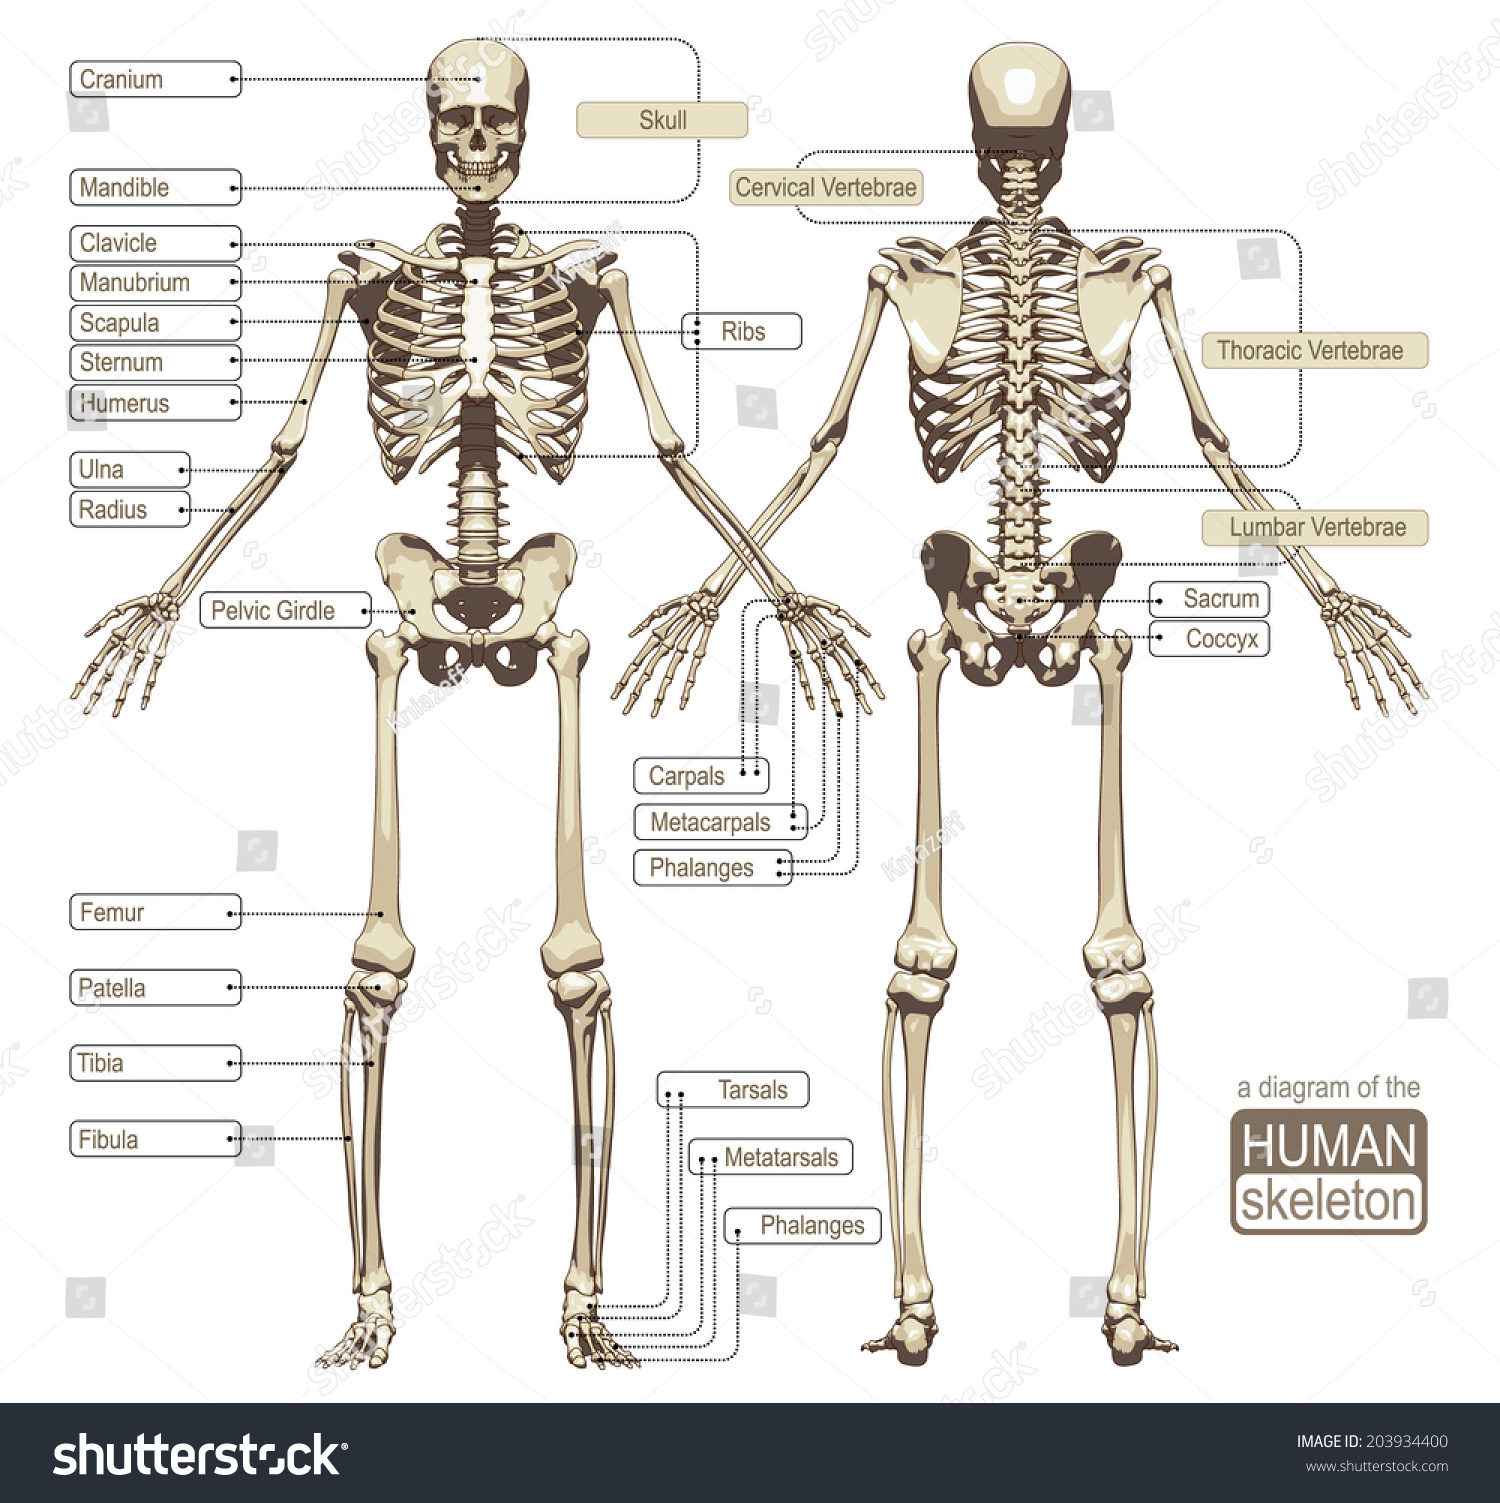 diagram human skeleton main parts skeletal stock vector 203934400, Skeleton